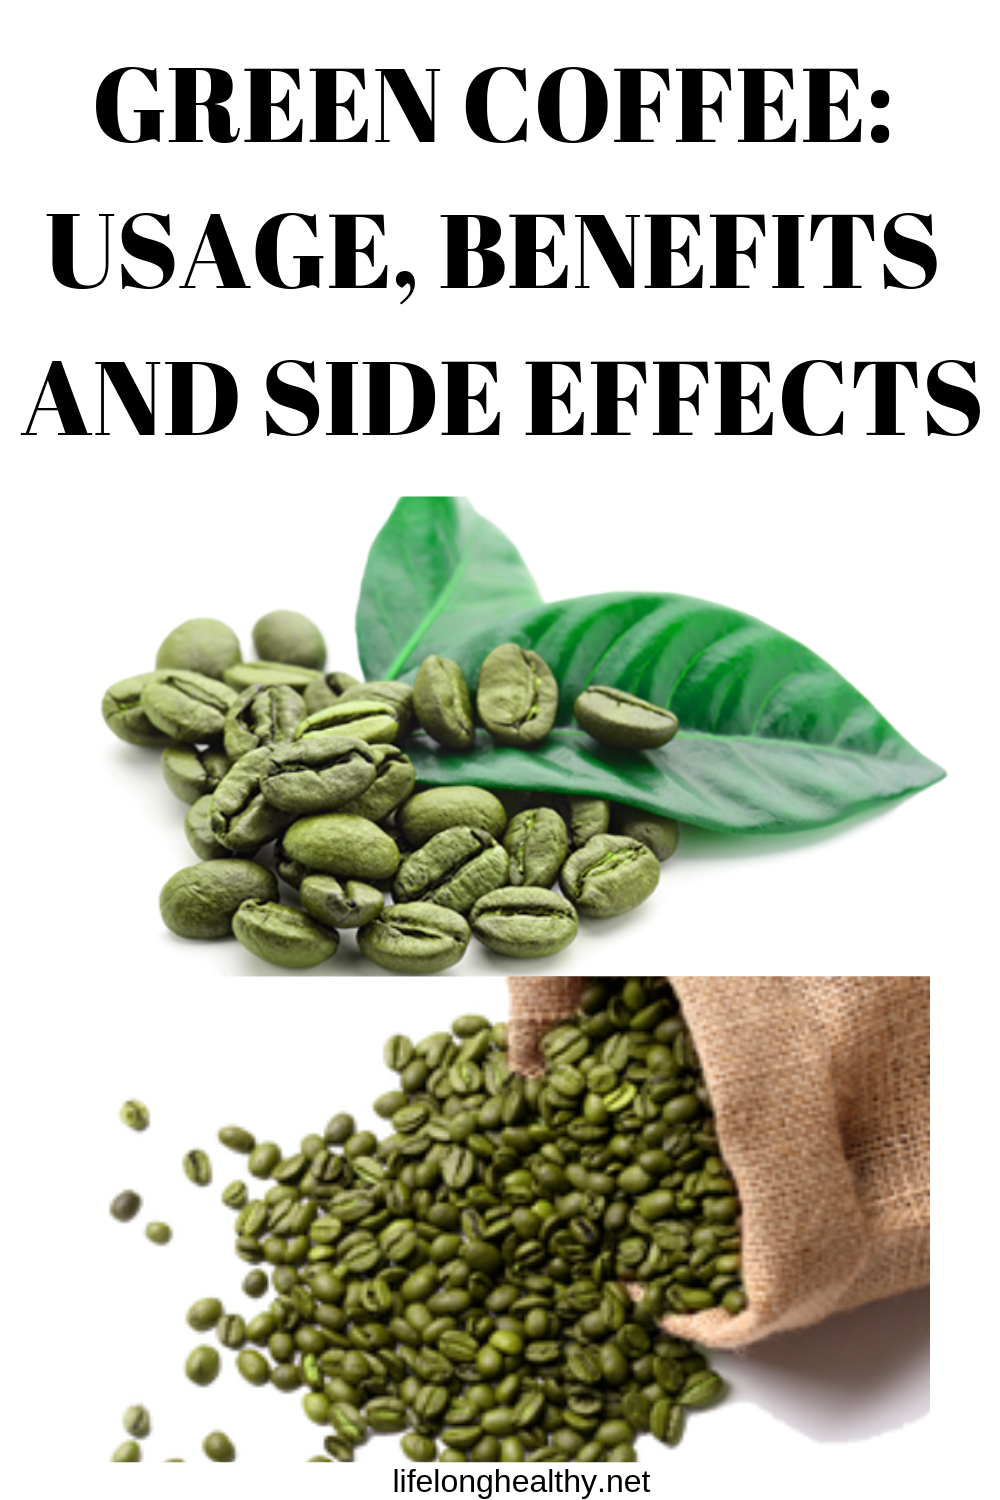 Green Coffee Usage Benefits And Side Effects Beans Benefits